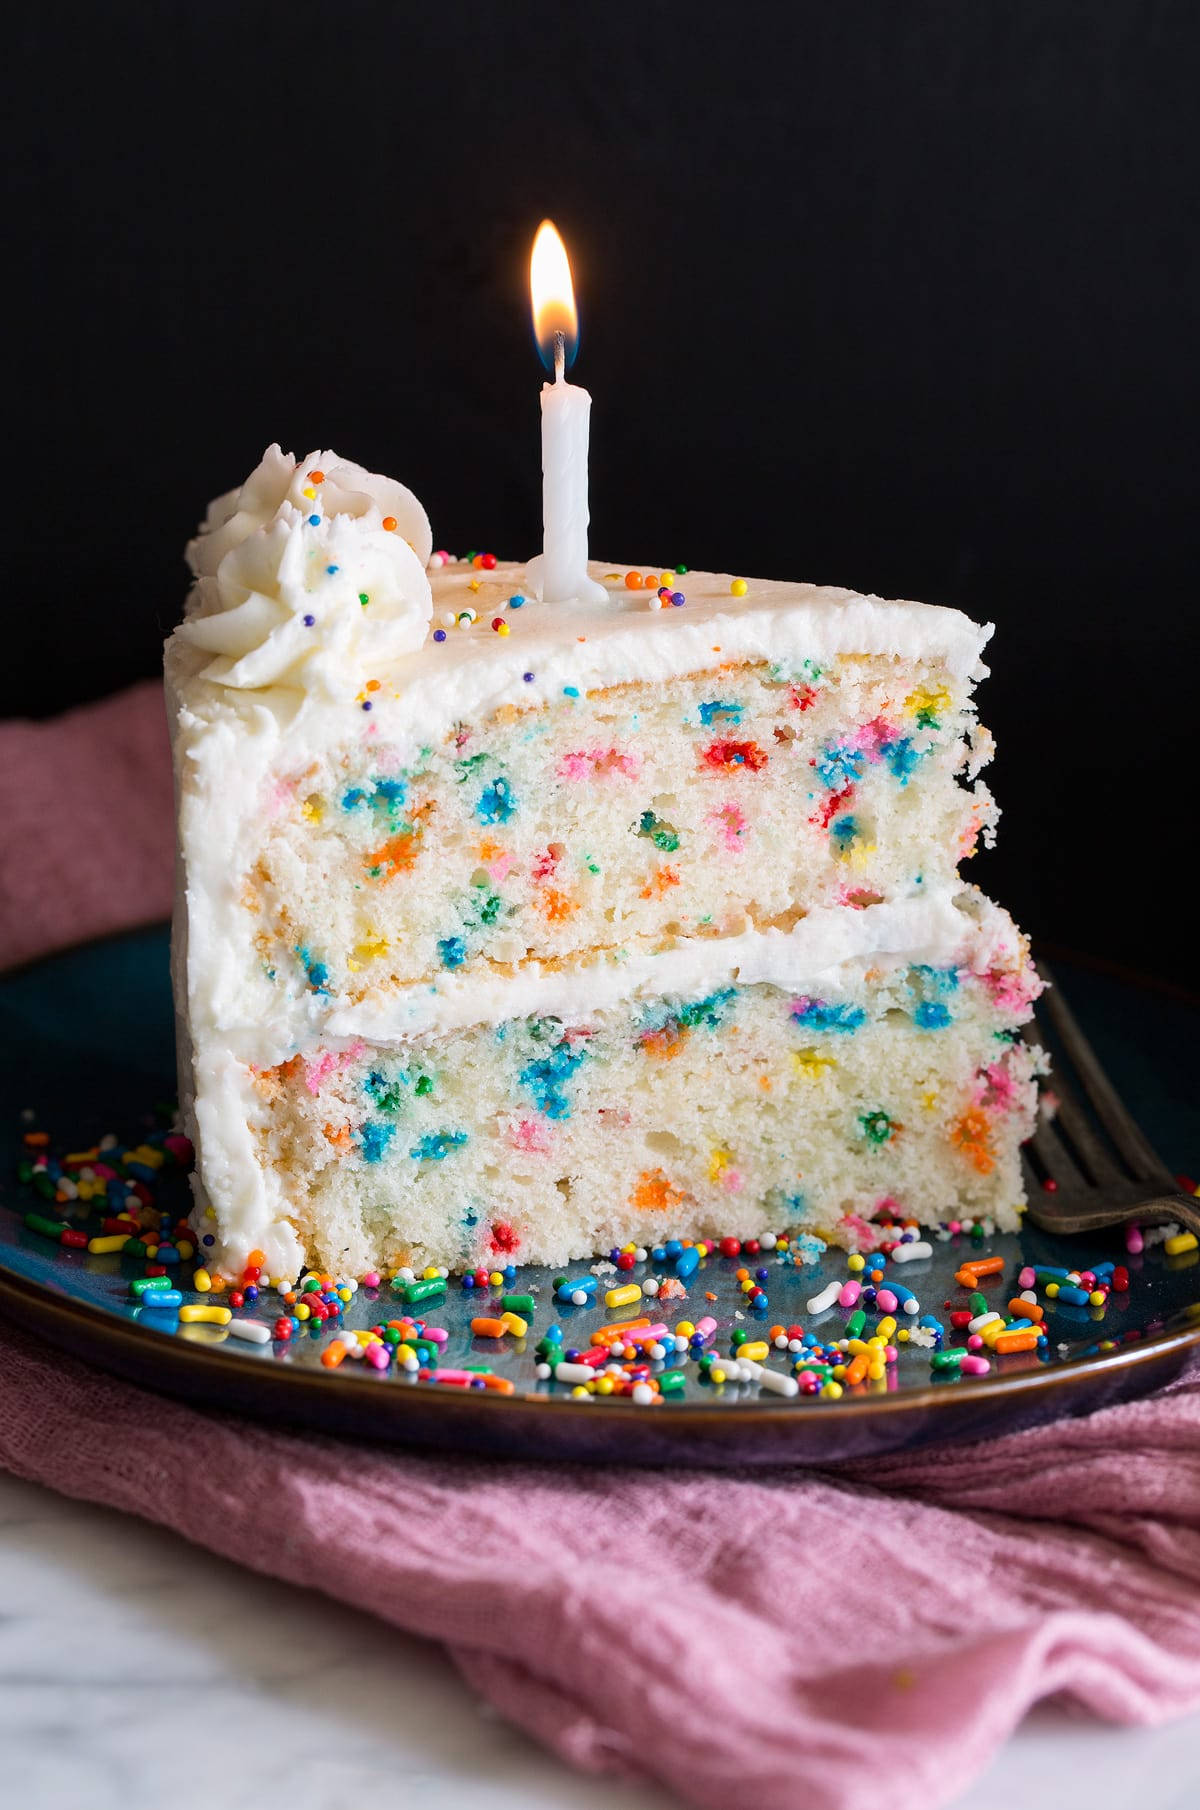 Super Best Birthday Cake Recipe Funfetti Cake Cooking Classy Funny Birthday Cards Online Inifodamsfinfo